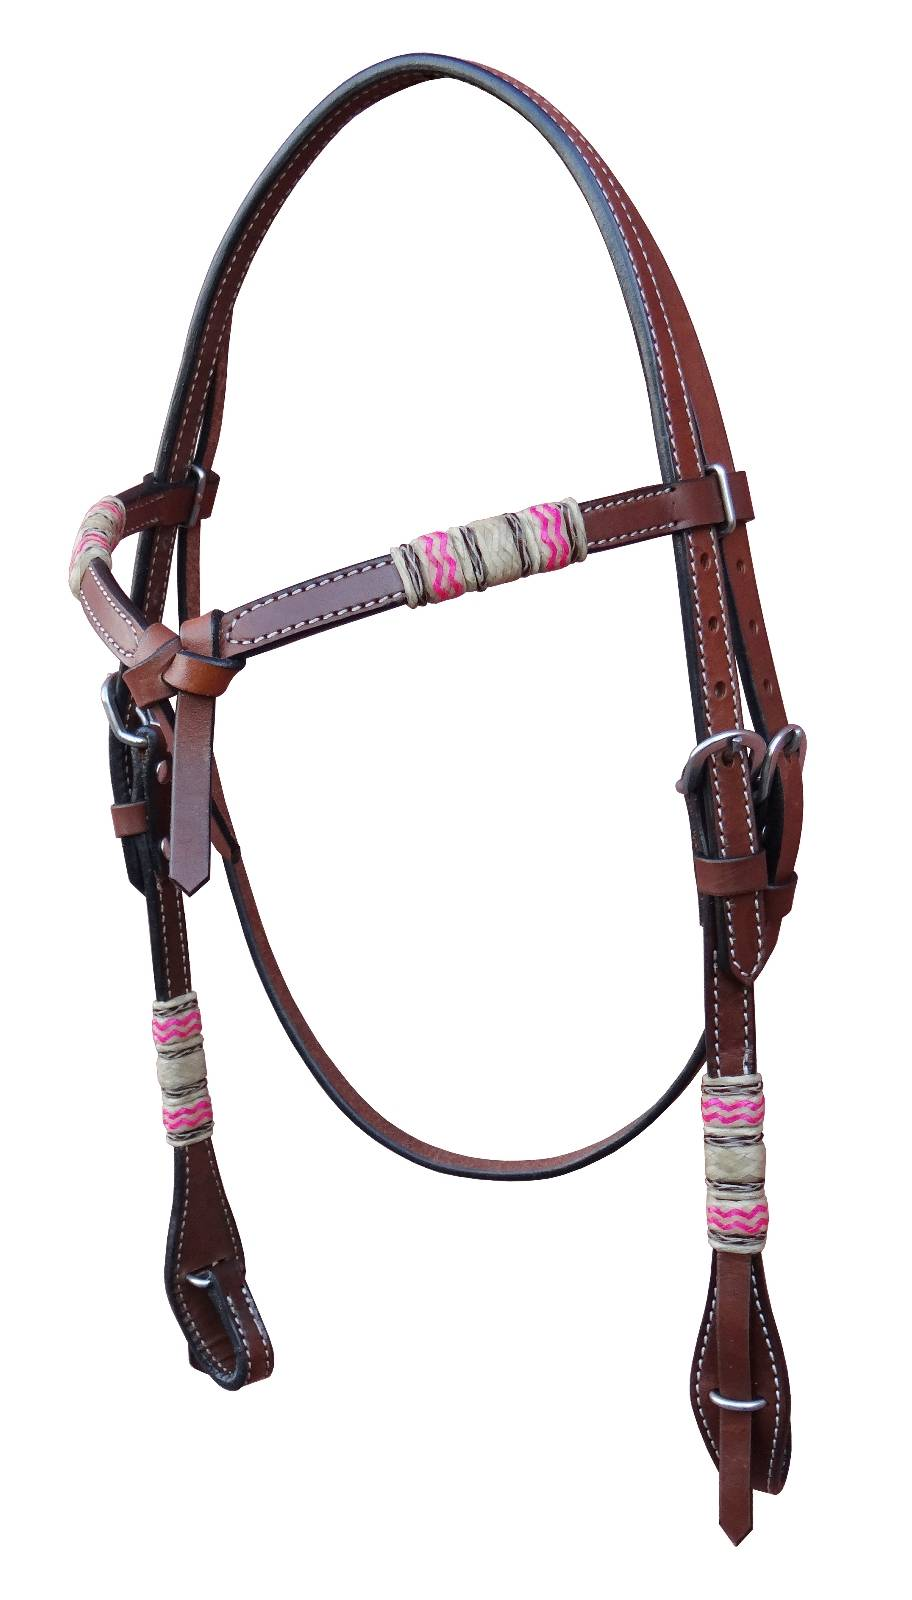 Turn-Two Knotted Headstall - Laredo